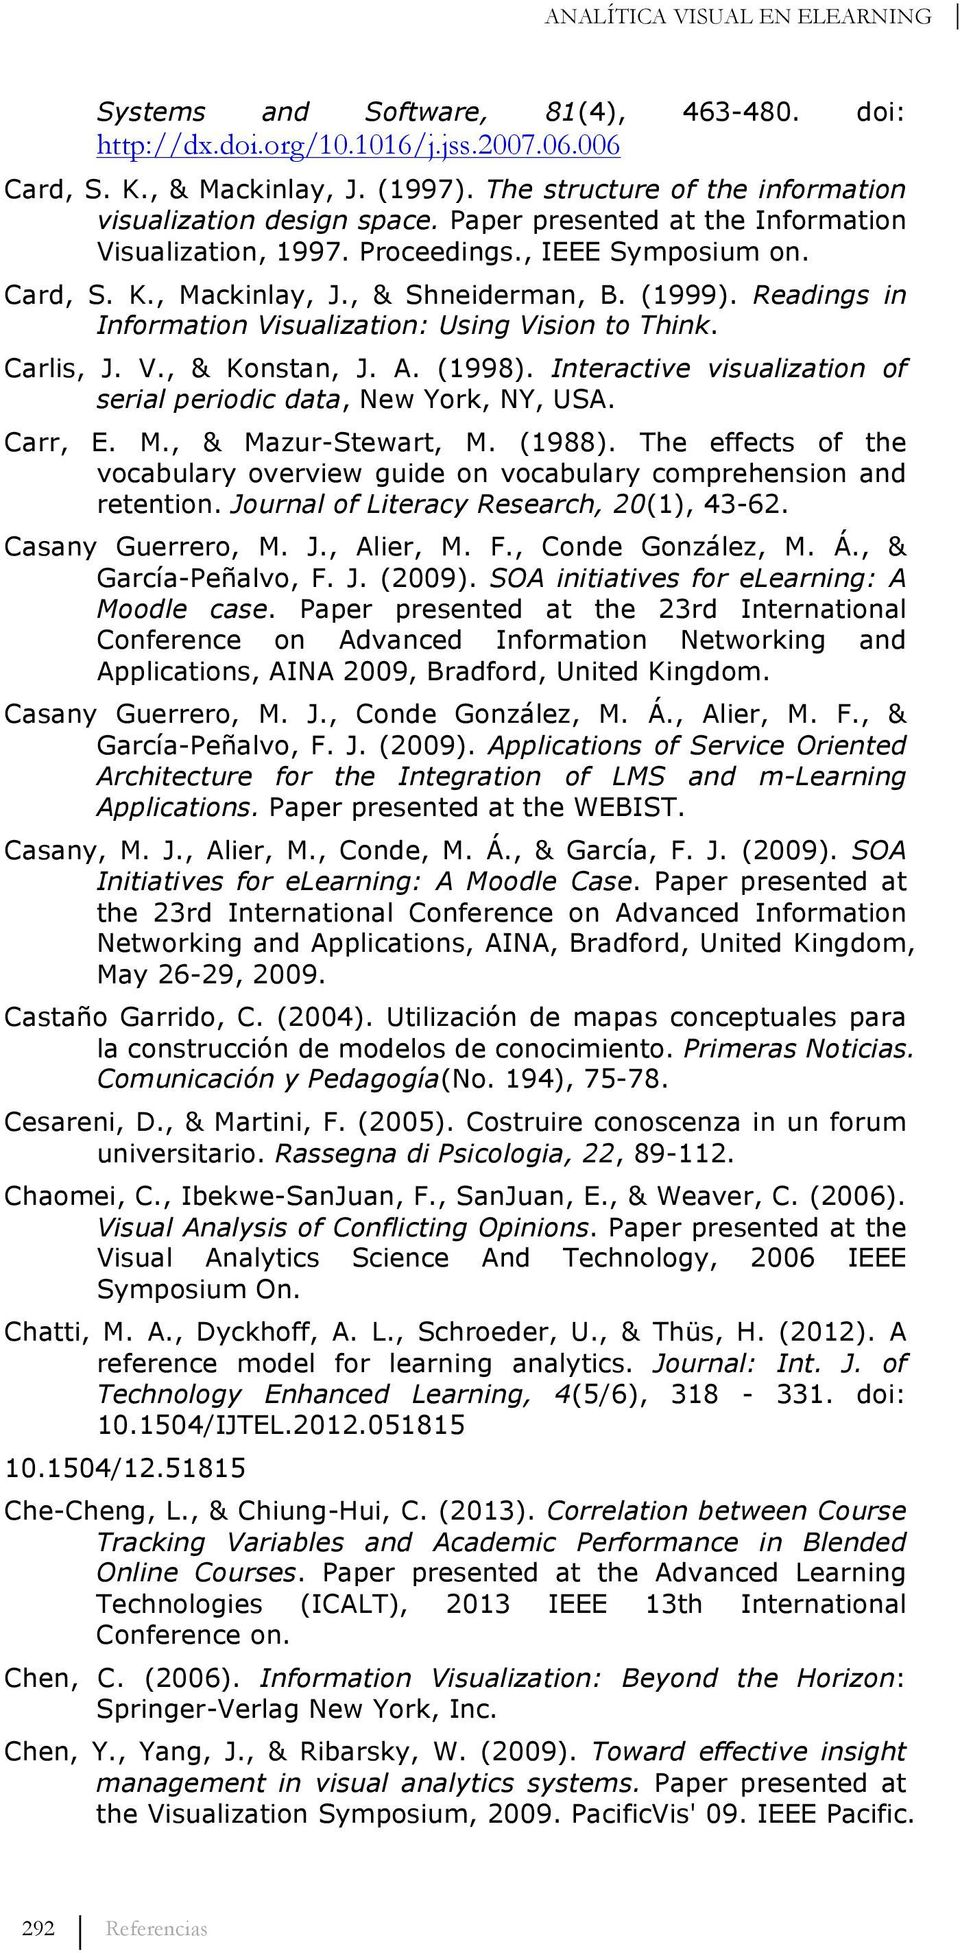 (1999). Readings in Information Visualization: Using Vision to Think. Carlis, J. V., & Konstan, J. A. (1998). Interactive visualization of serial periodic data, New York, NY, USA. Carr, E. M.